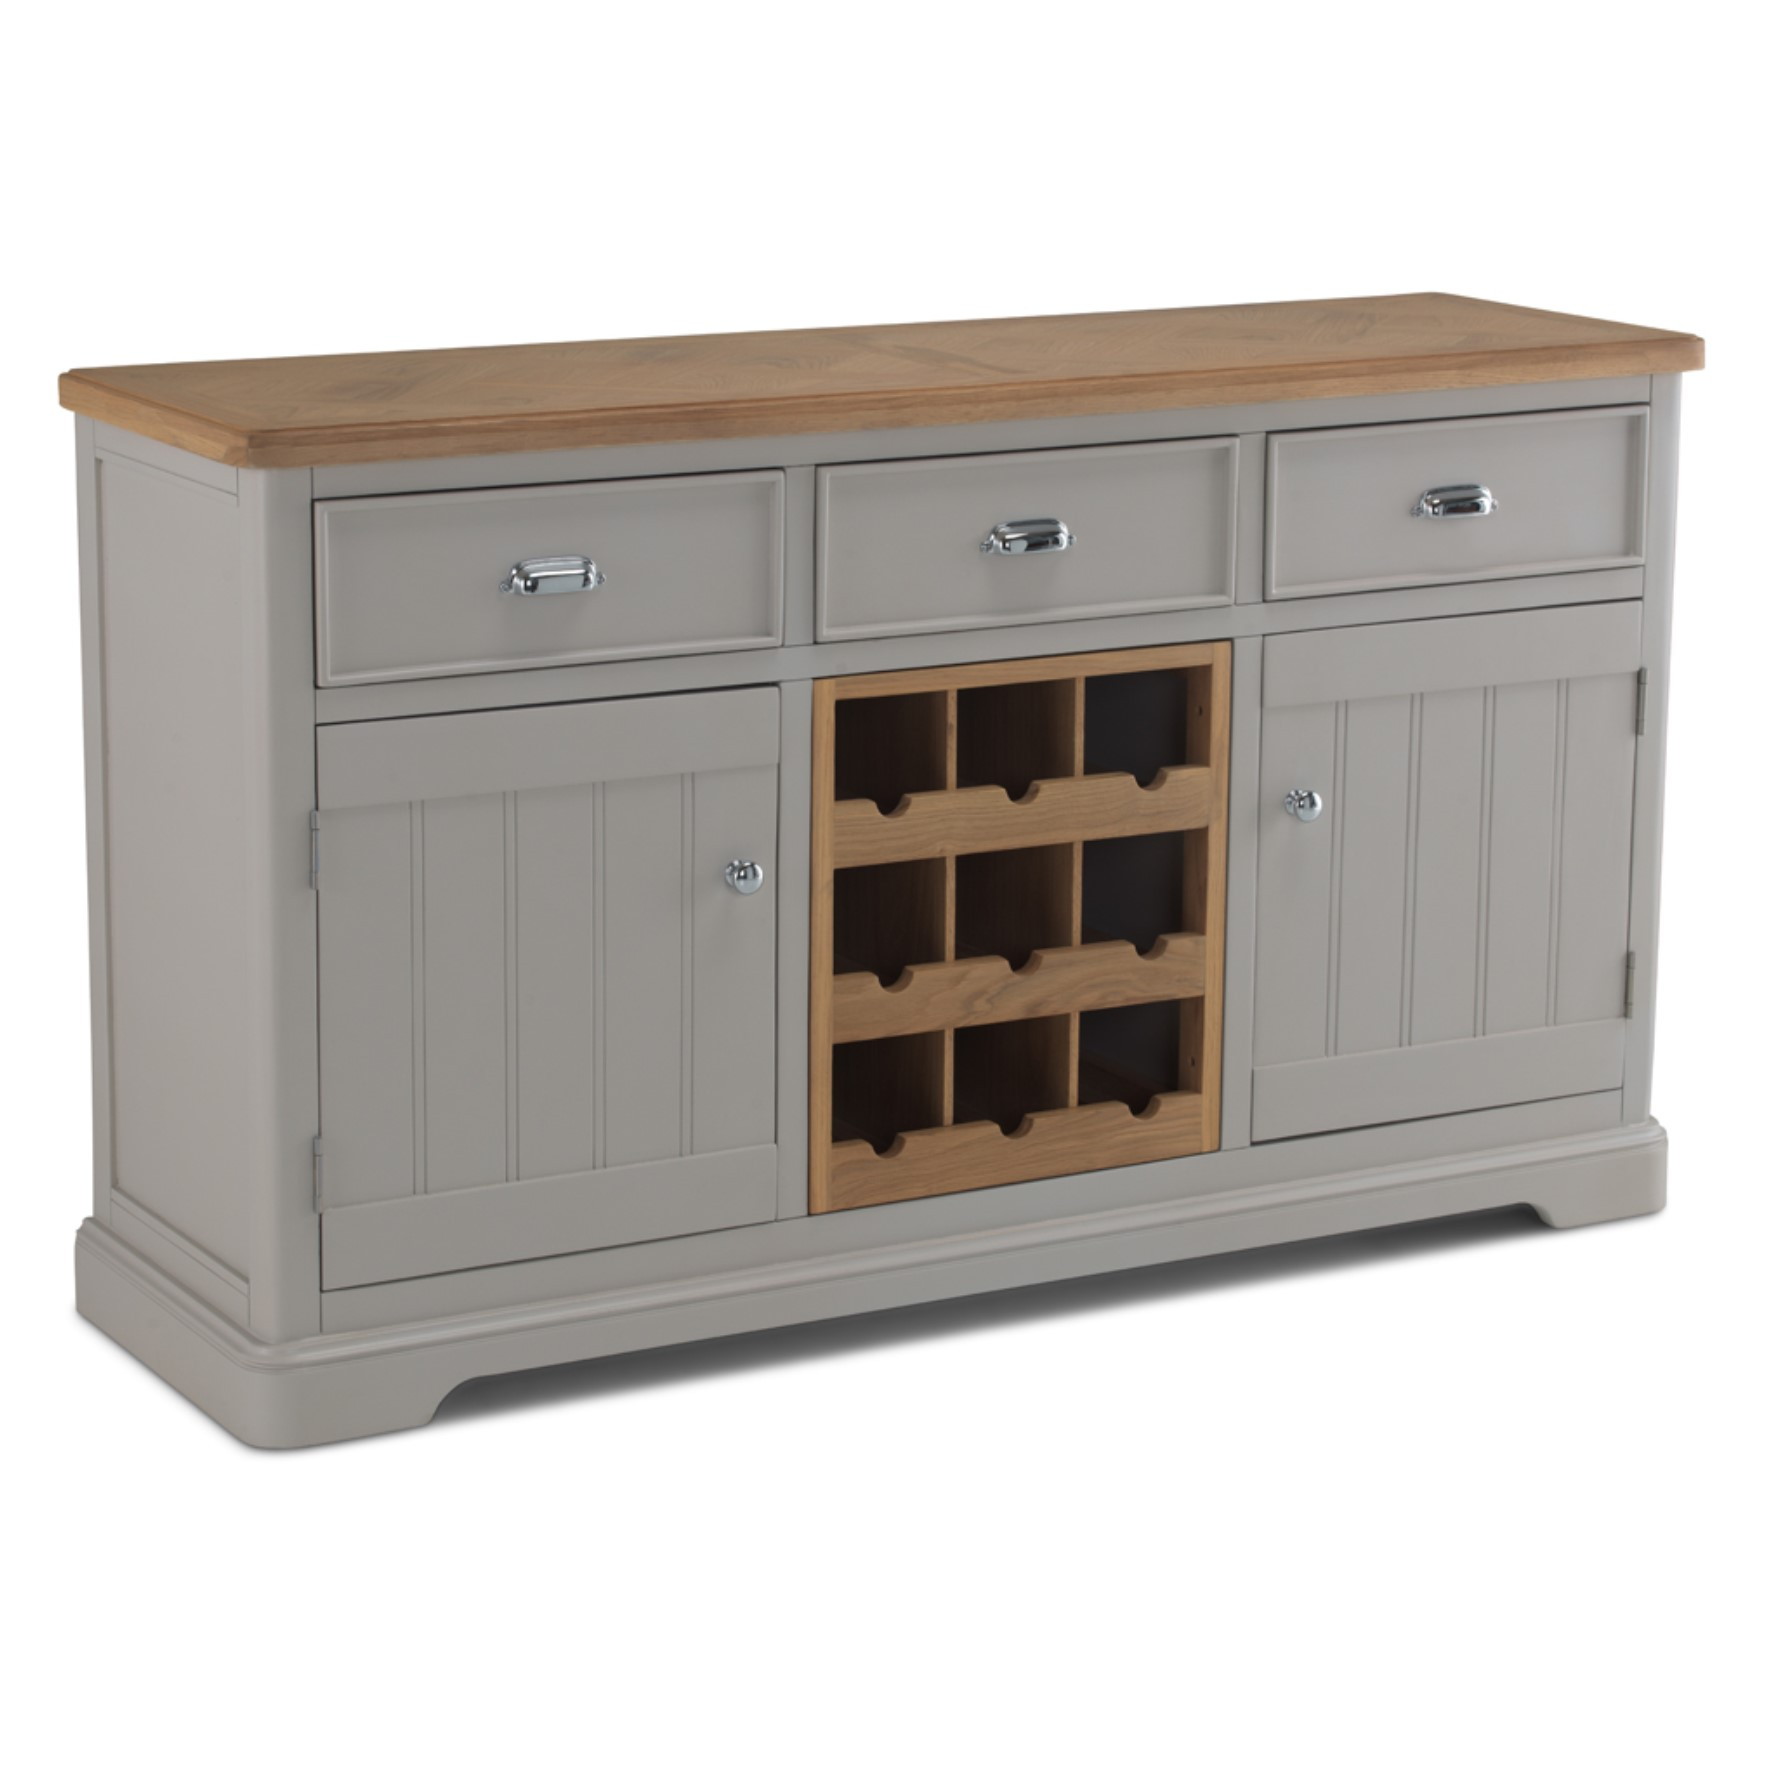 Sorrento Large Sideboard & Winerack